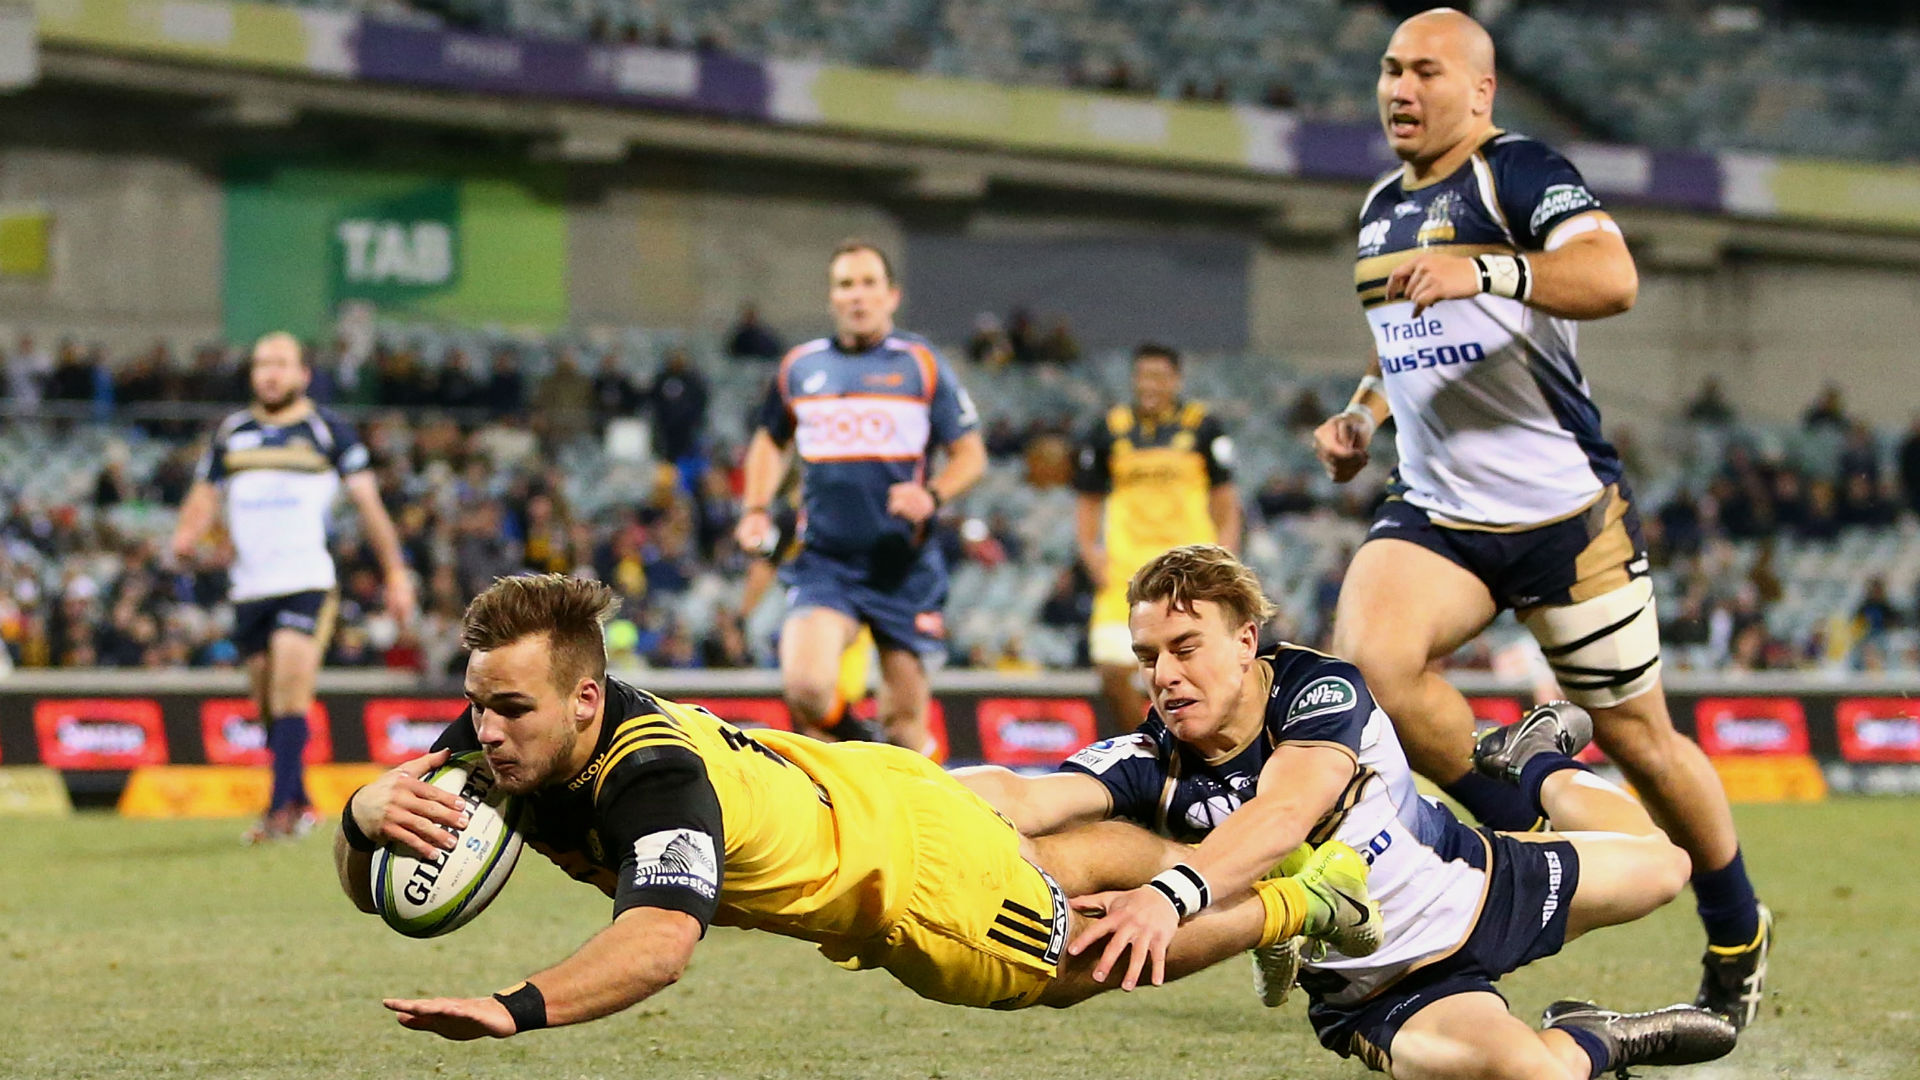 Hurricanes beat Brumbies 35-16 in quarter-final at Canberra Stadium